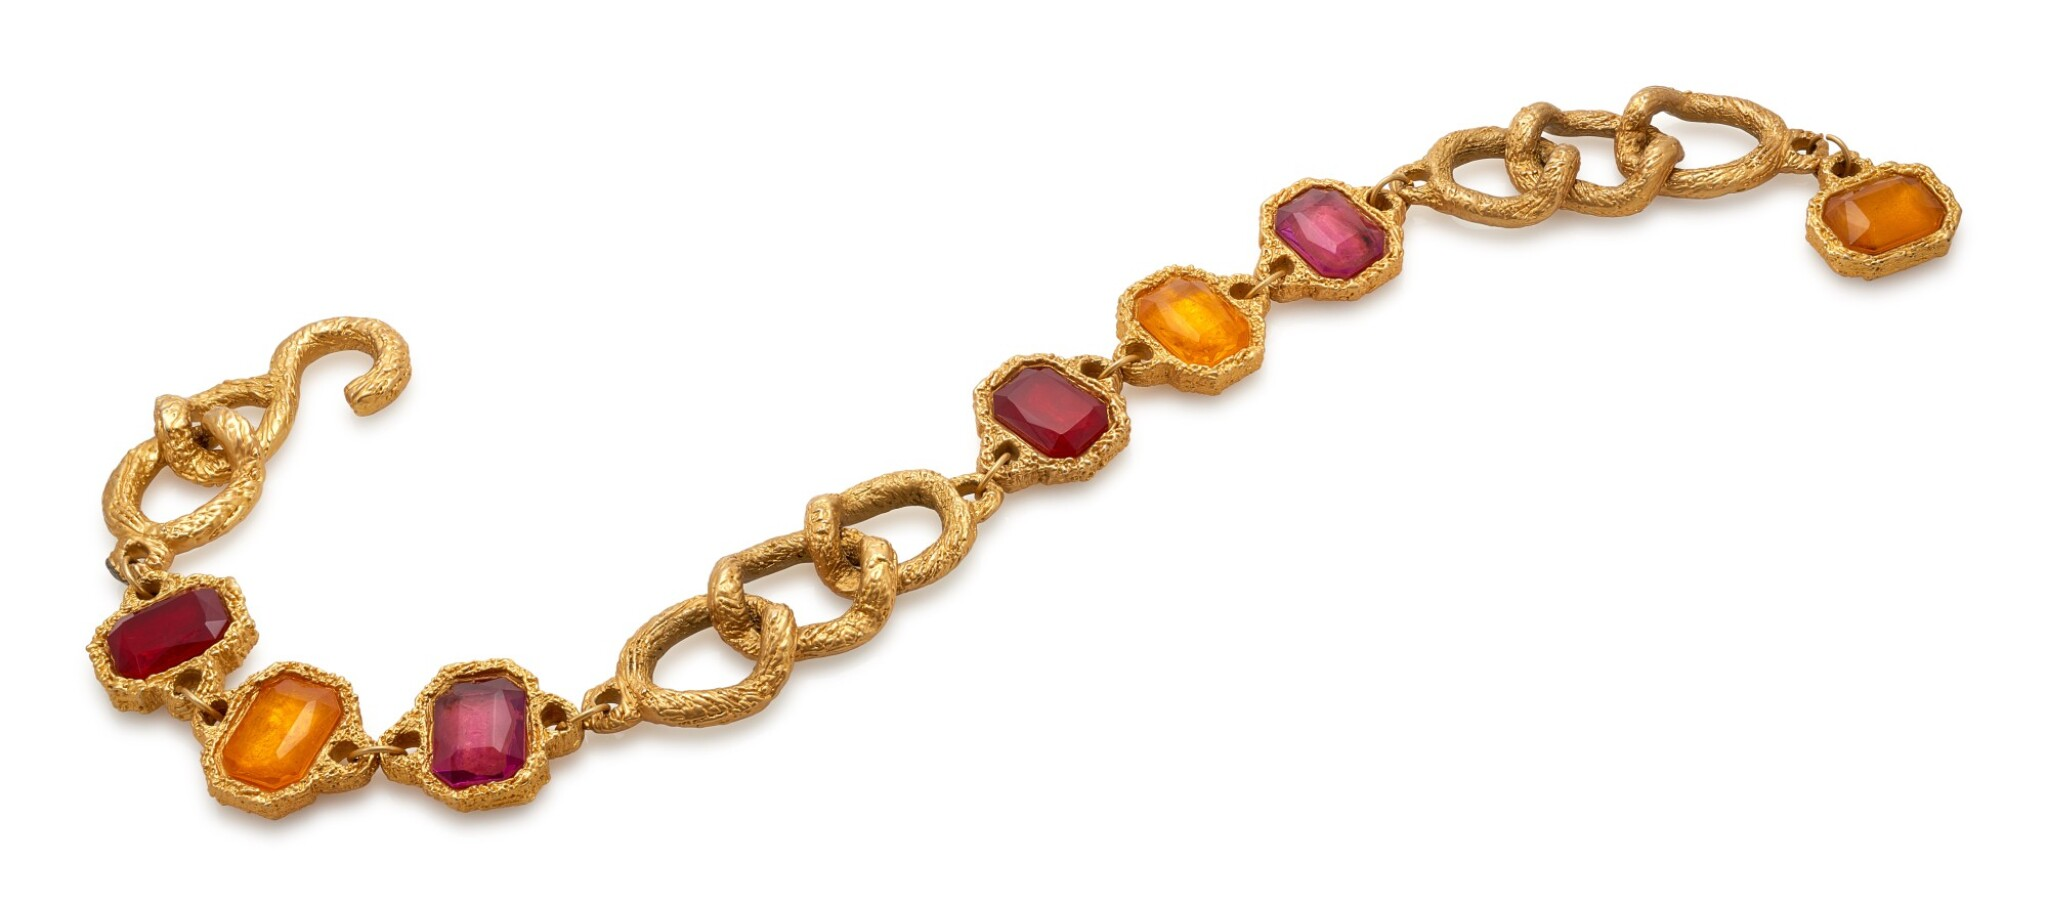 View 1 of Lot 4. RED AND ORANGE GRIPOIX AND GOLD-TONE METAL BELT, CHANEL.